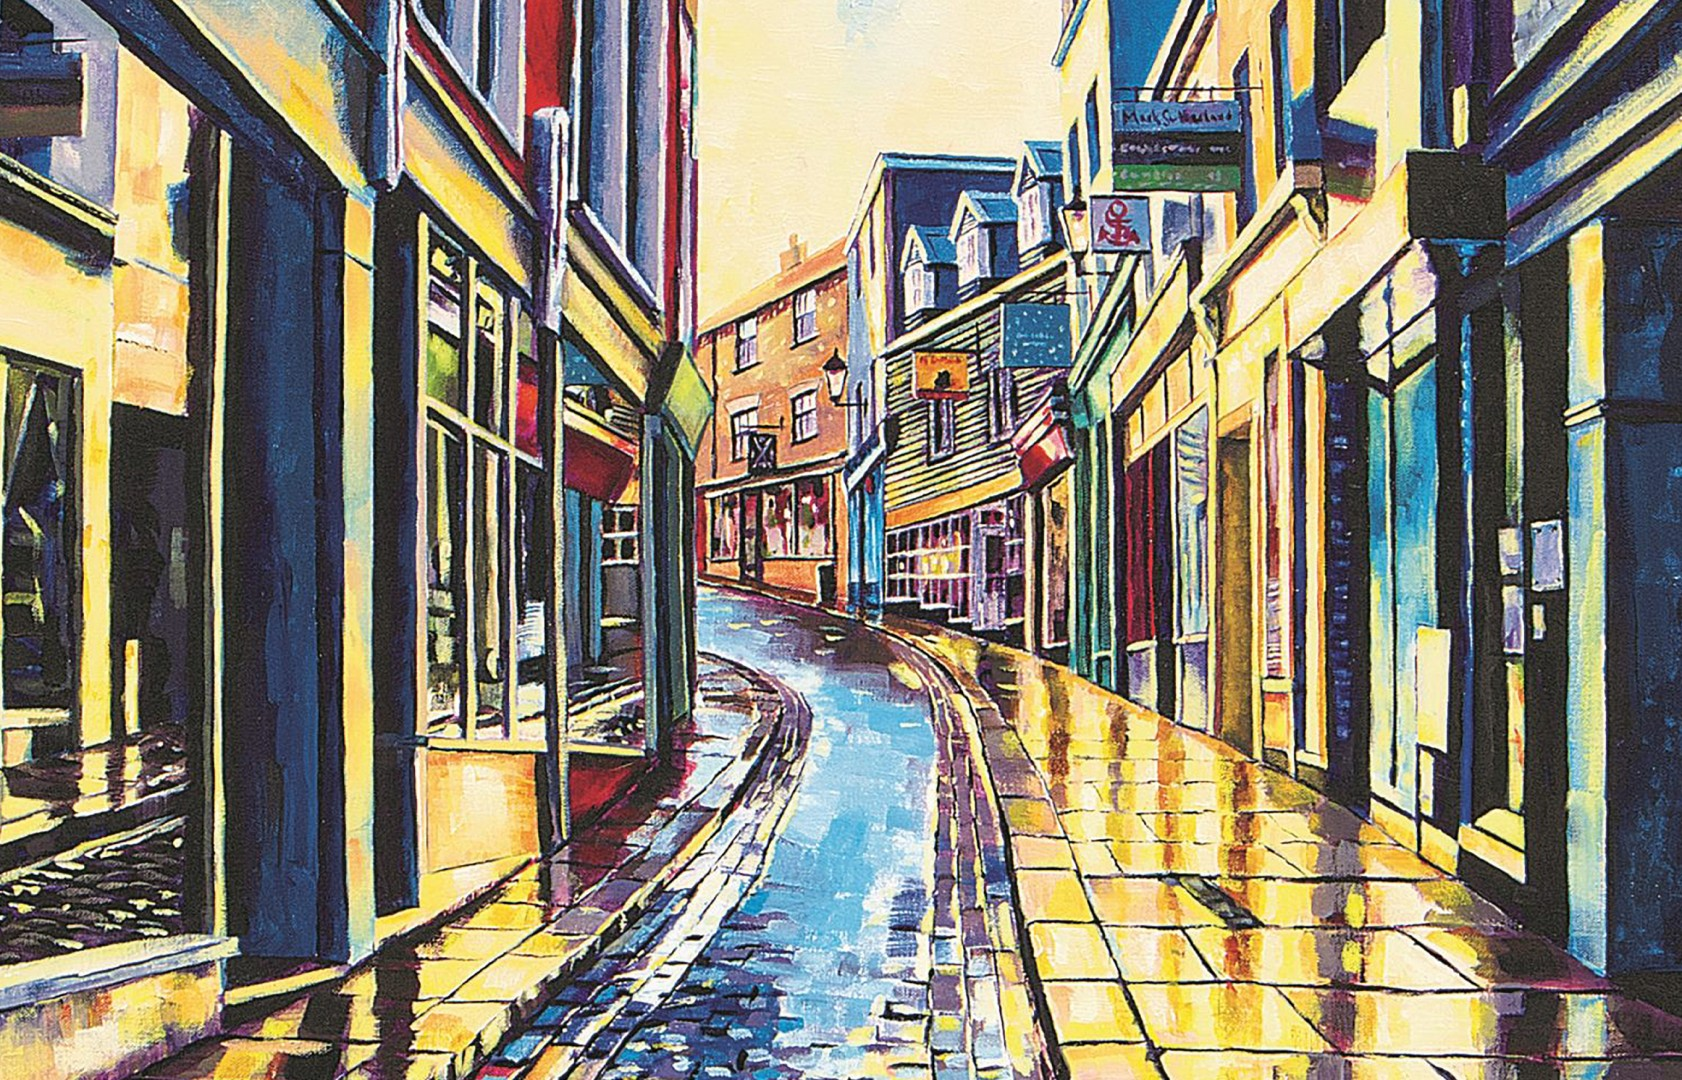 Painting of The Old High Street by Shane Record of Folkestone Harbour Arm